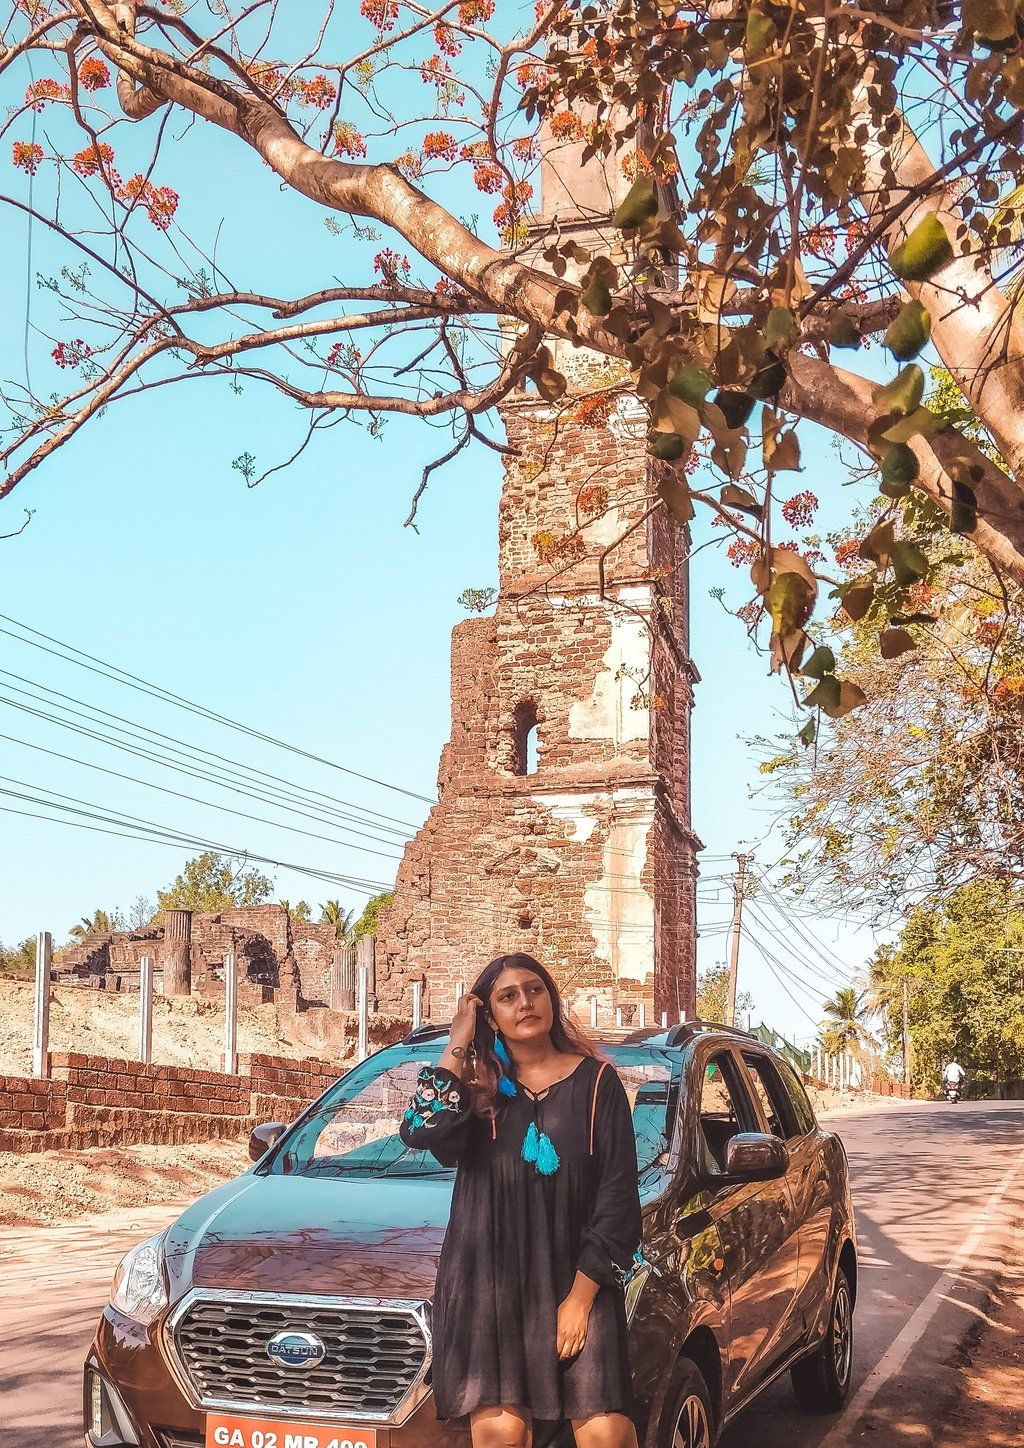 offbeat-places-in-goa-st-augustine-tower-old-goa